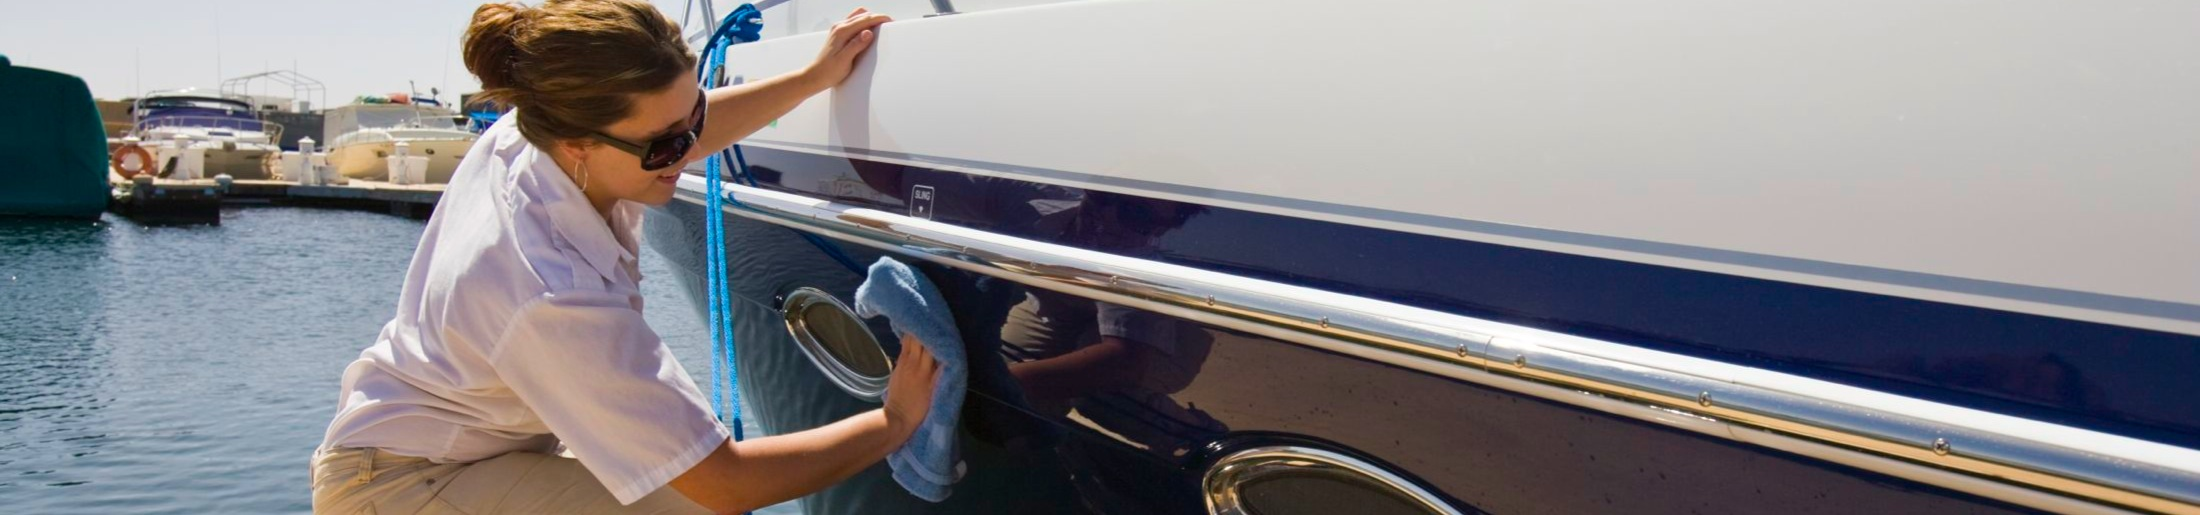 Boat Cleaning at Lake Powell Marinas